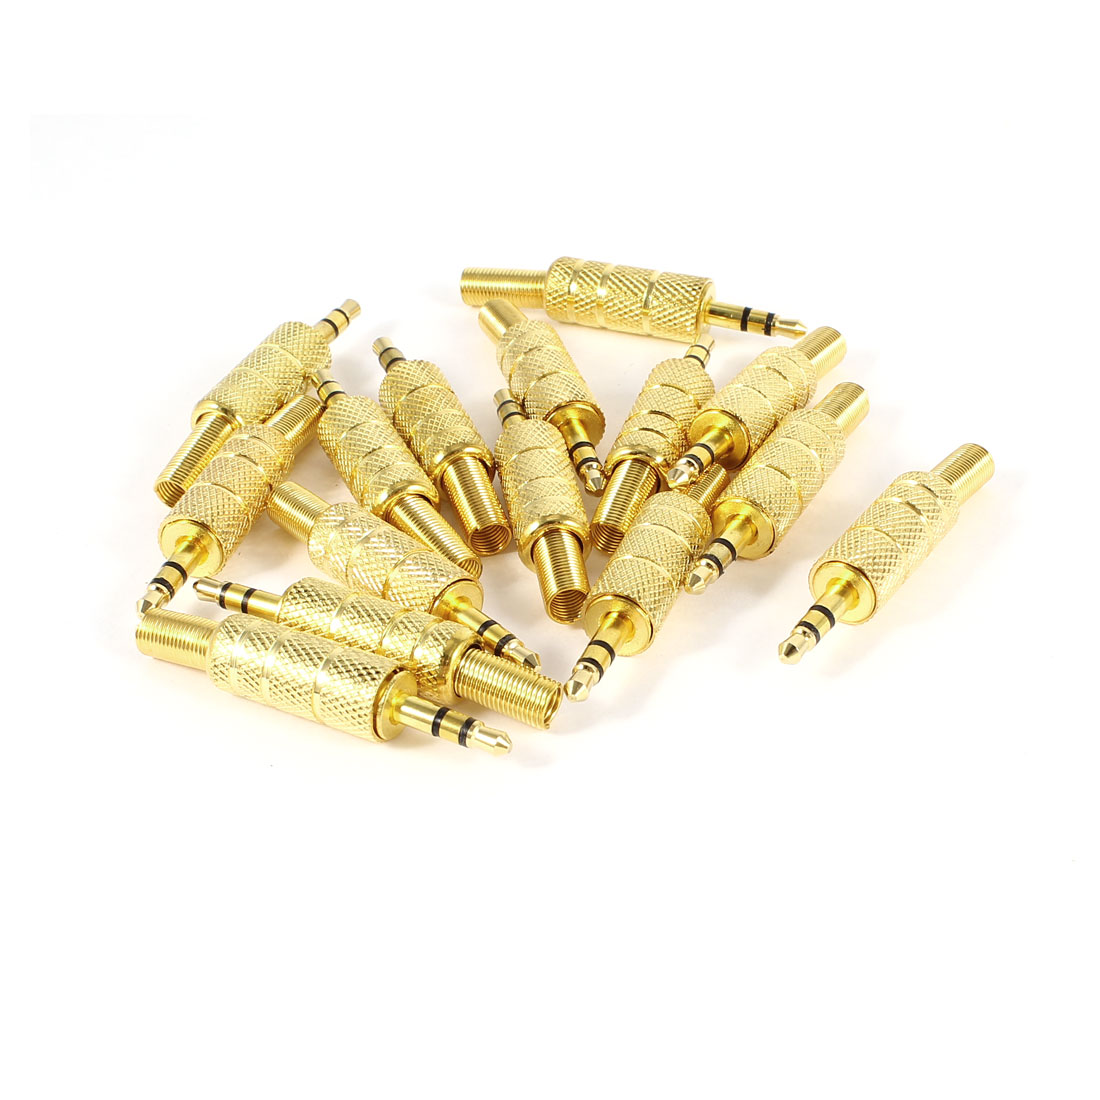 "DIY 3.5mm 1/8"" Male Gold Plated Mono Audio Adapter Connector 15 Pcs"